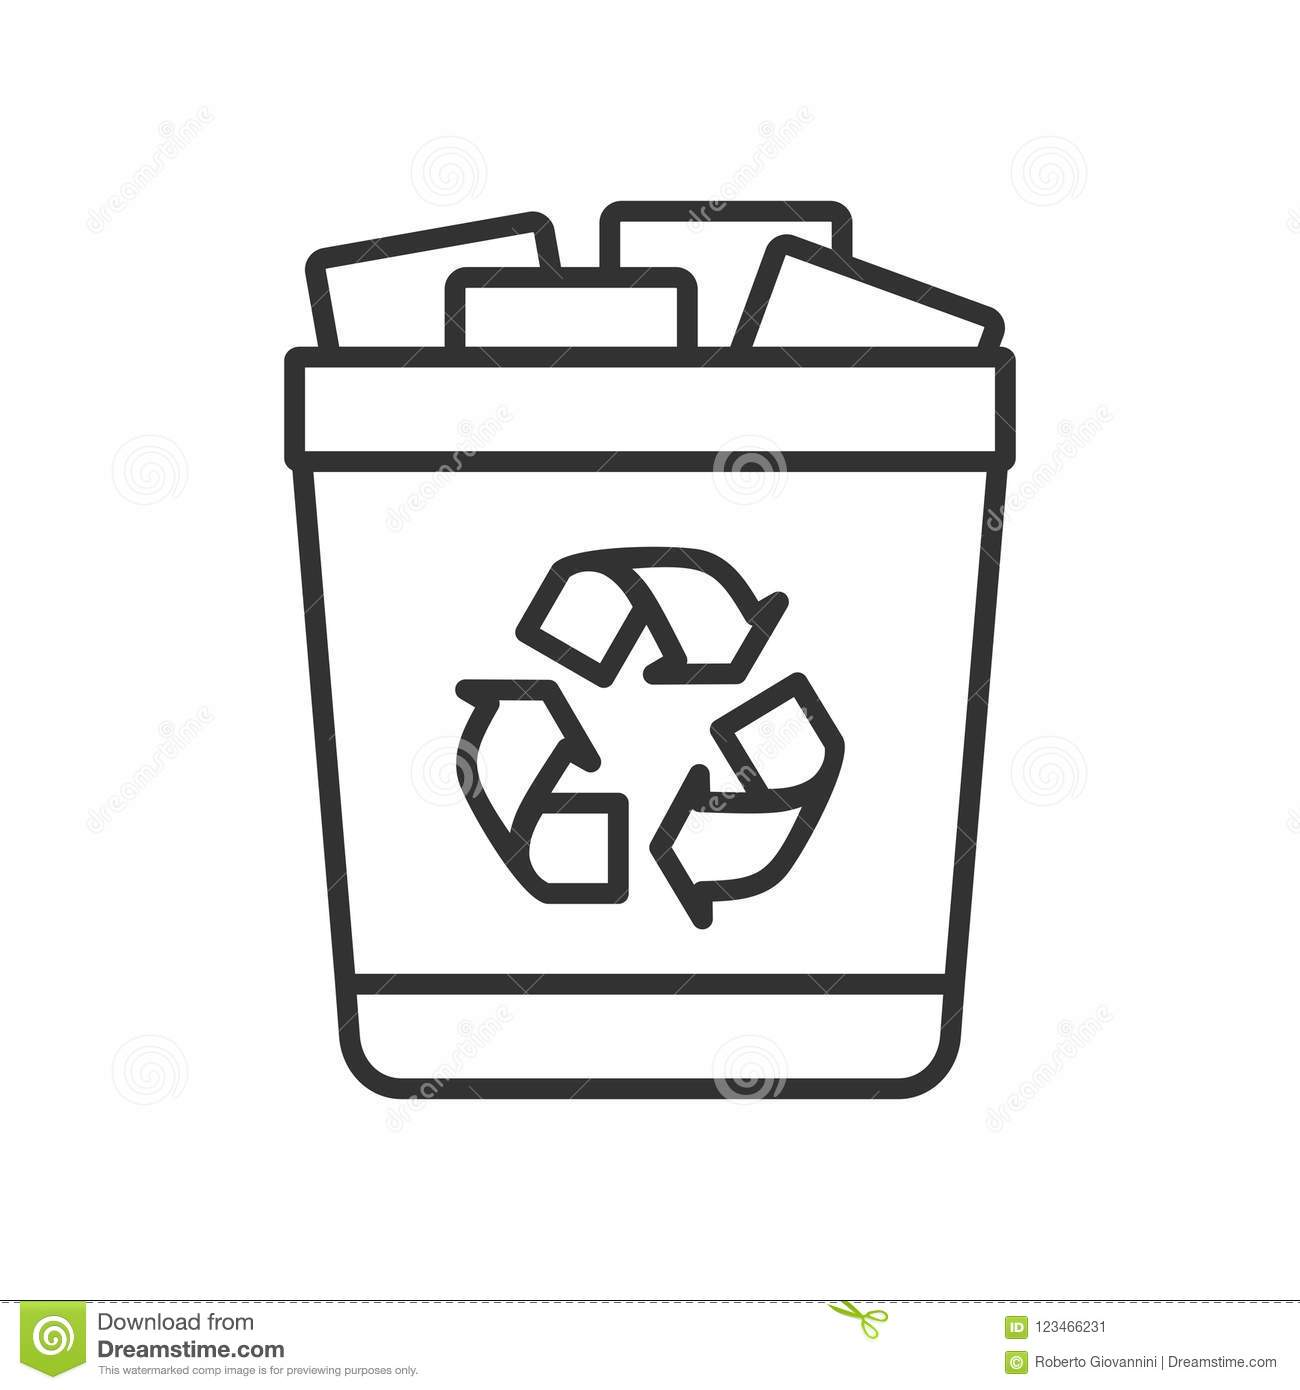 Full Trash Can Outline Flat Icon on White